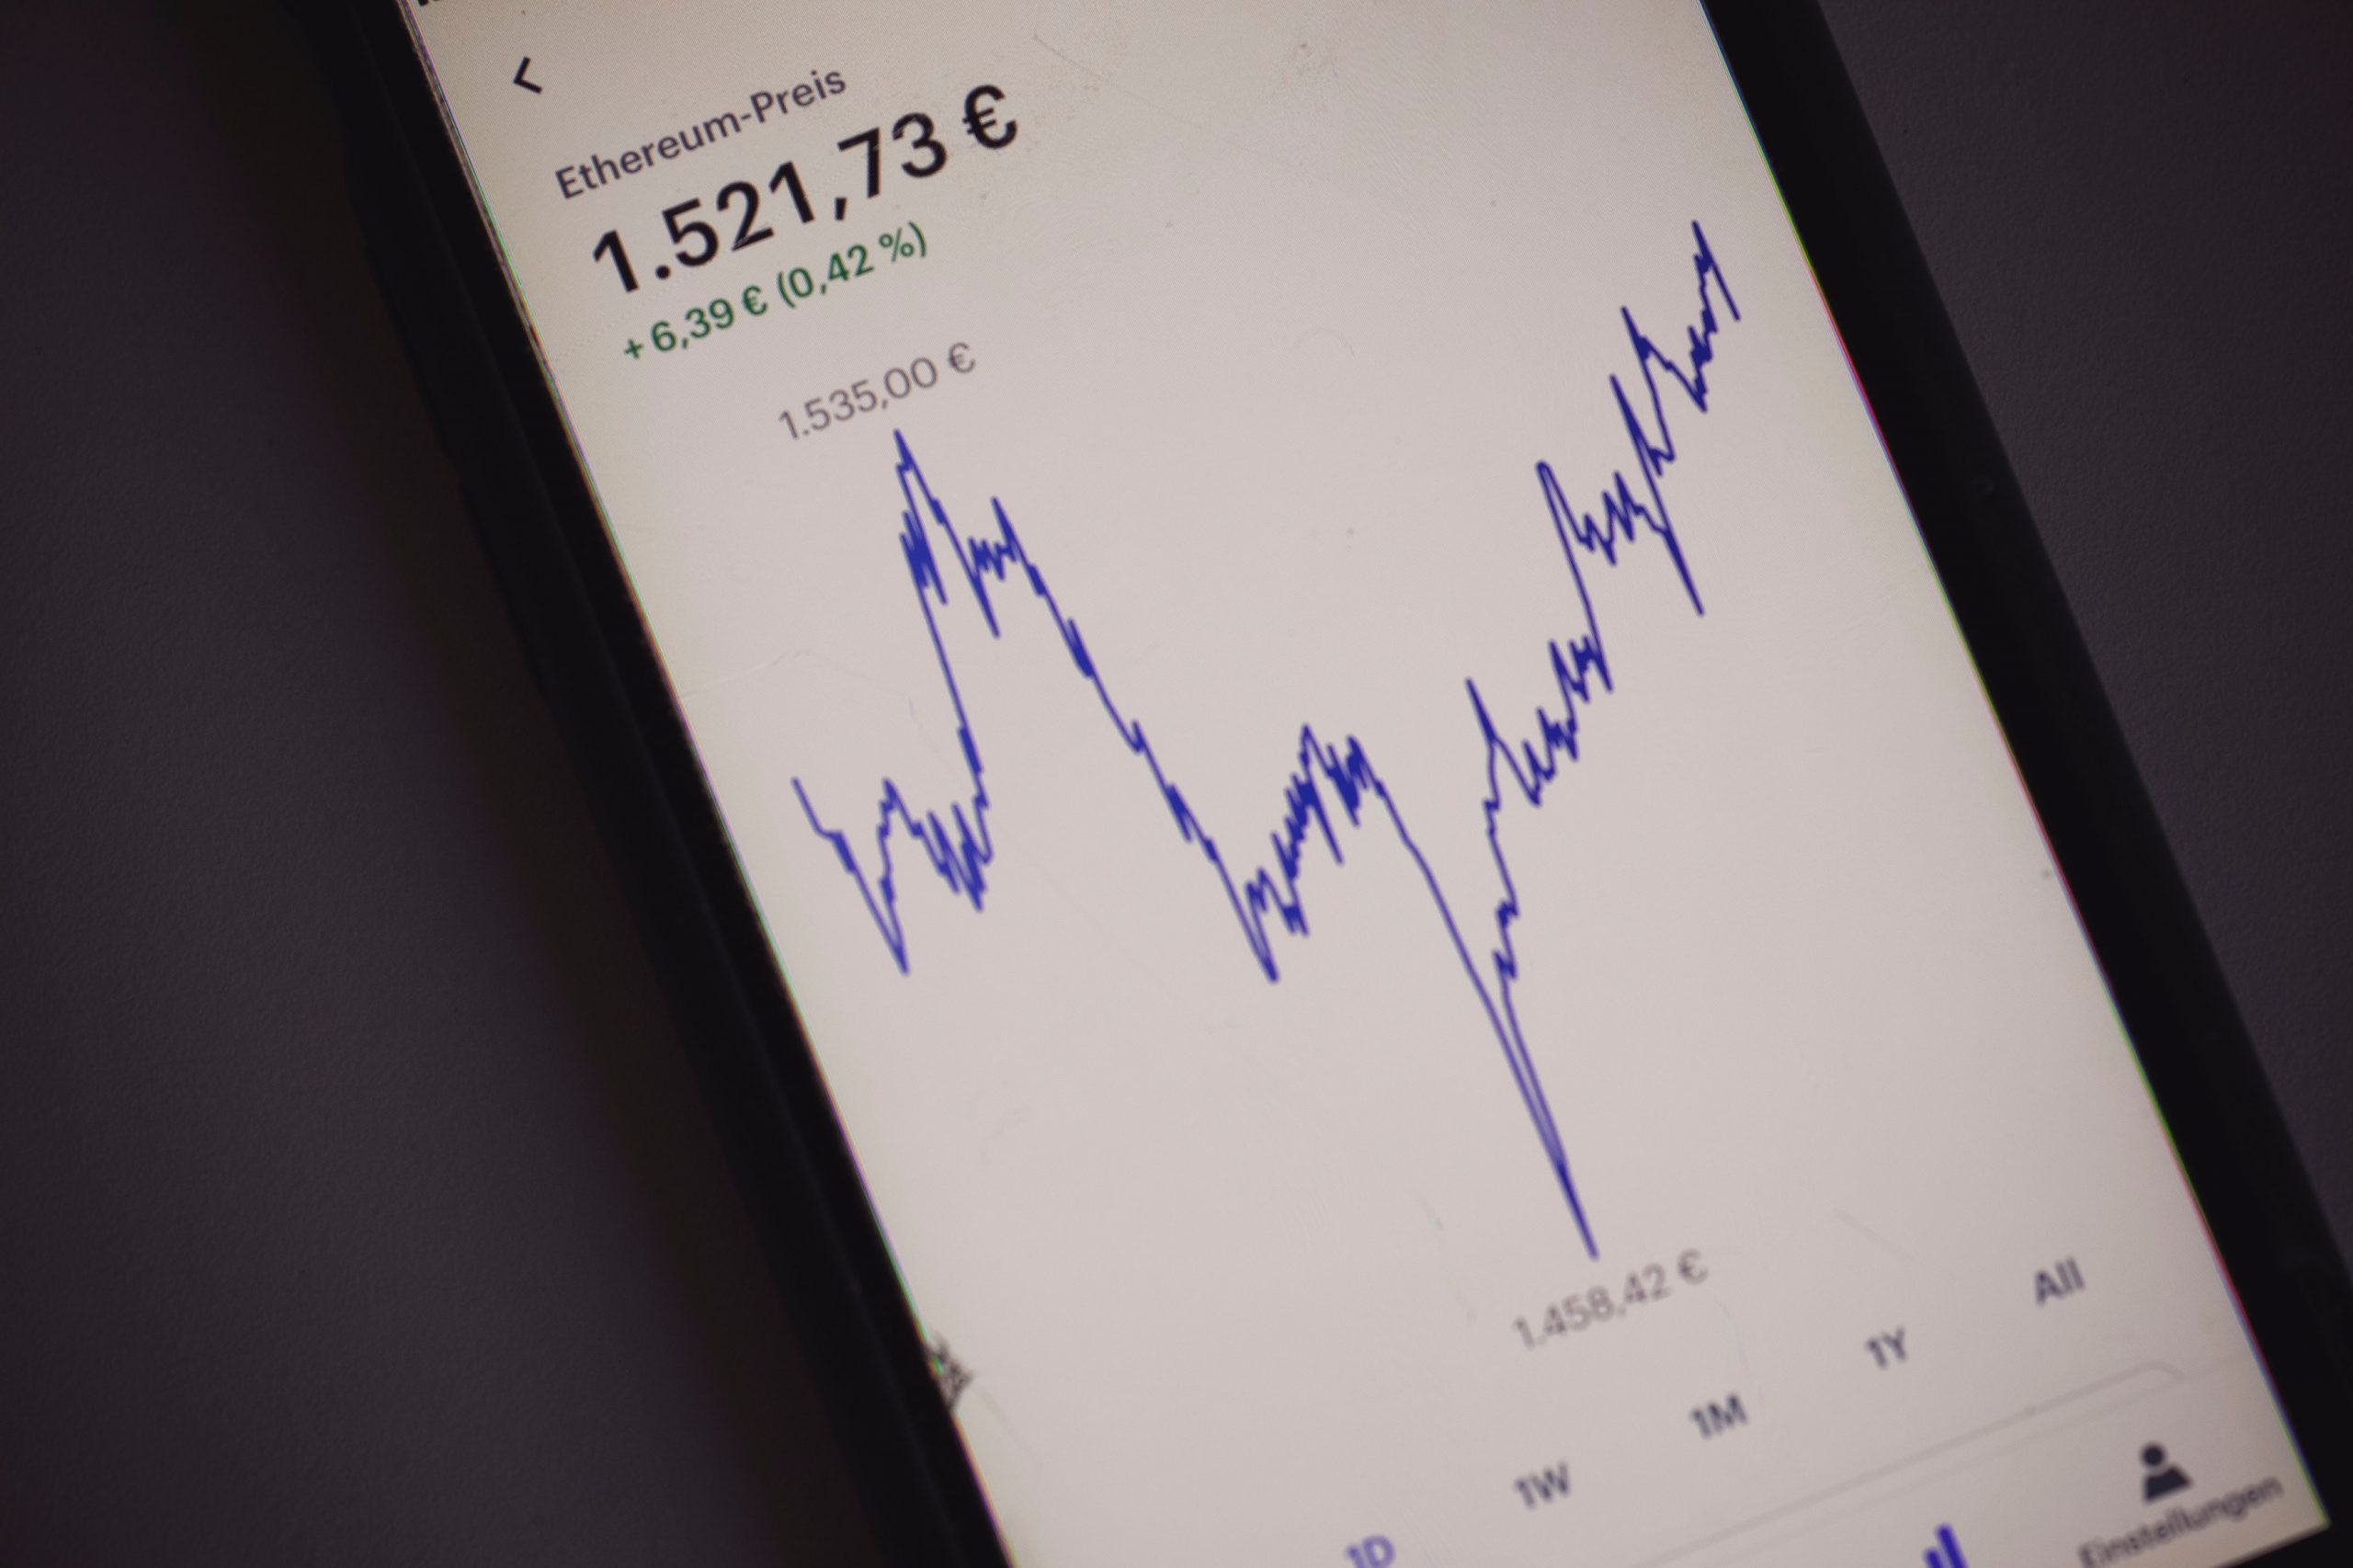 Mobile device neo-broker smart stock trading app. Made with analog vintage lens, Leica APO Macro Elmarit-R 2.8 100mm (Year: 1993)